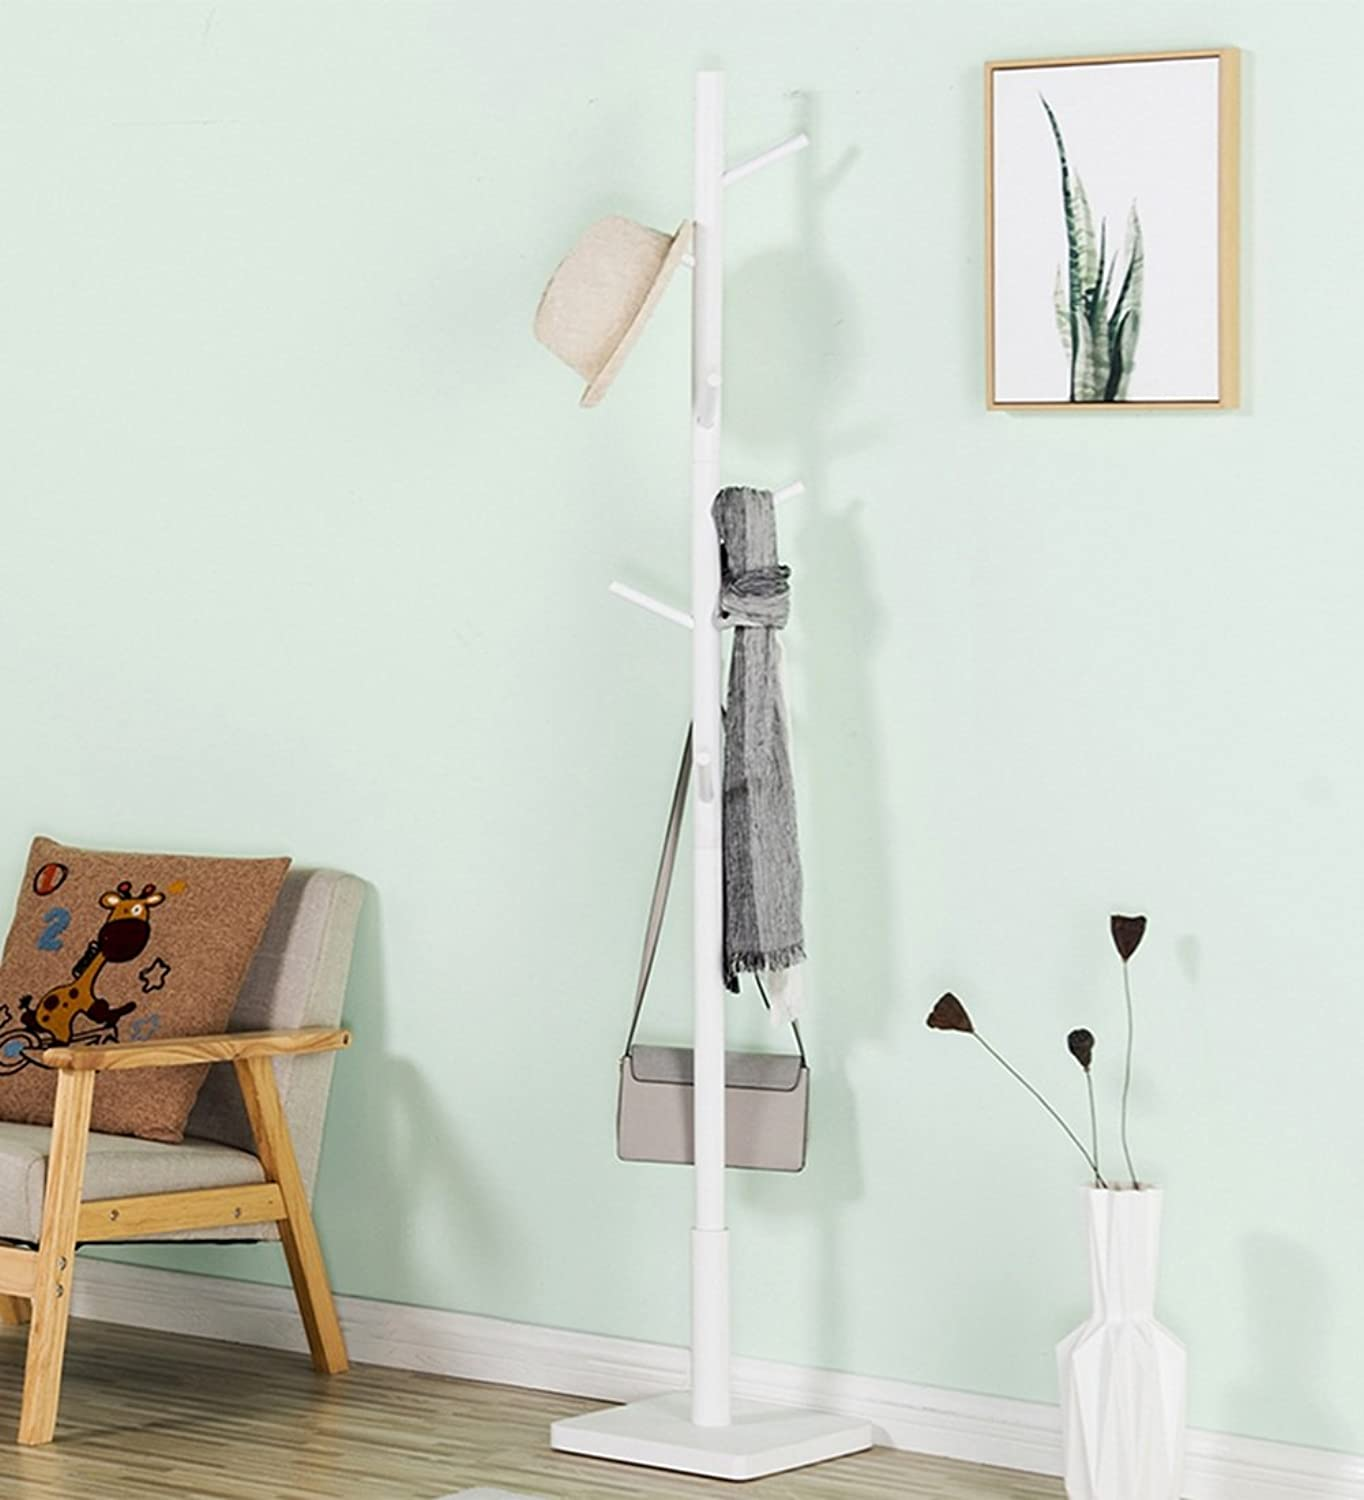 QIANGDA Floor Standing Hat and Coat Rack Solid Wood Minimalist Style 175cm X 30cm X 30cm, 3 colors Optional (color   White)